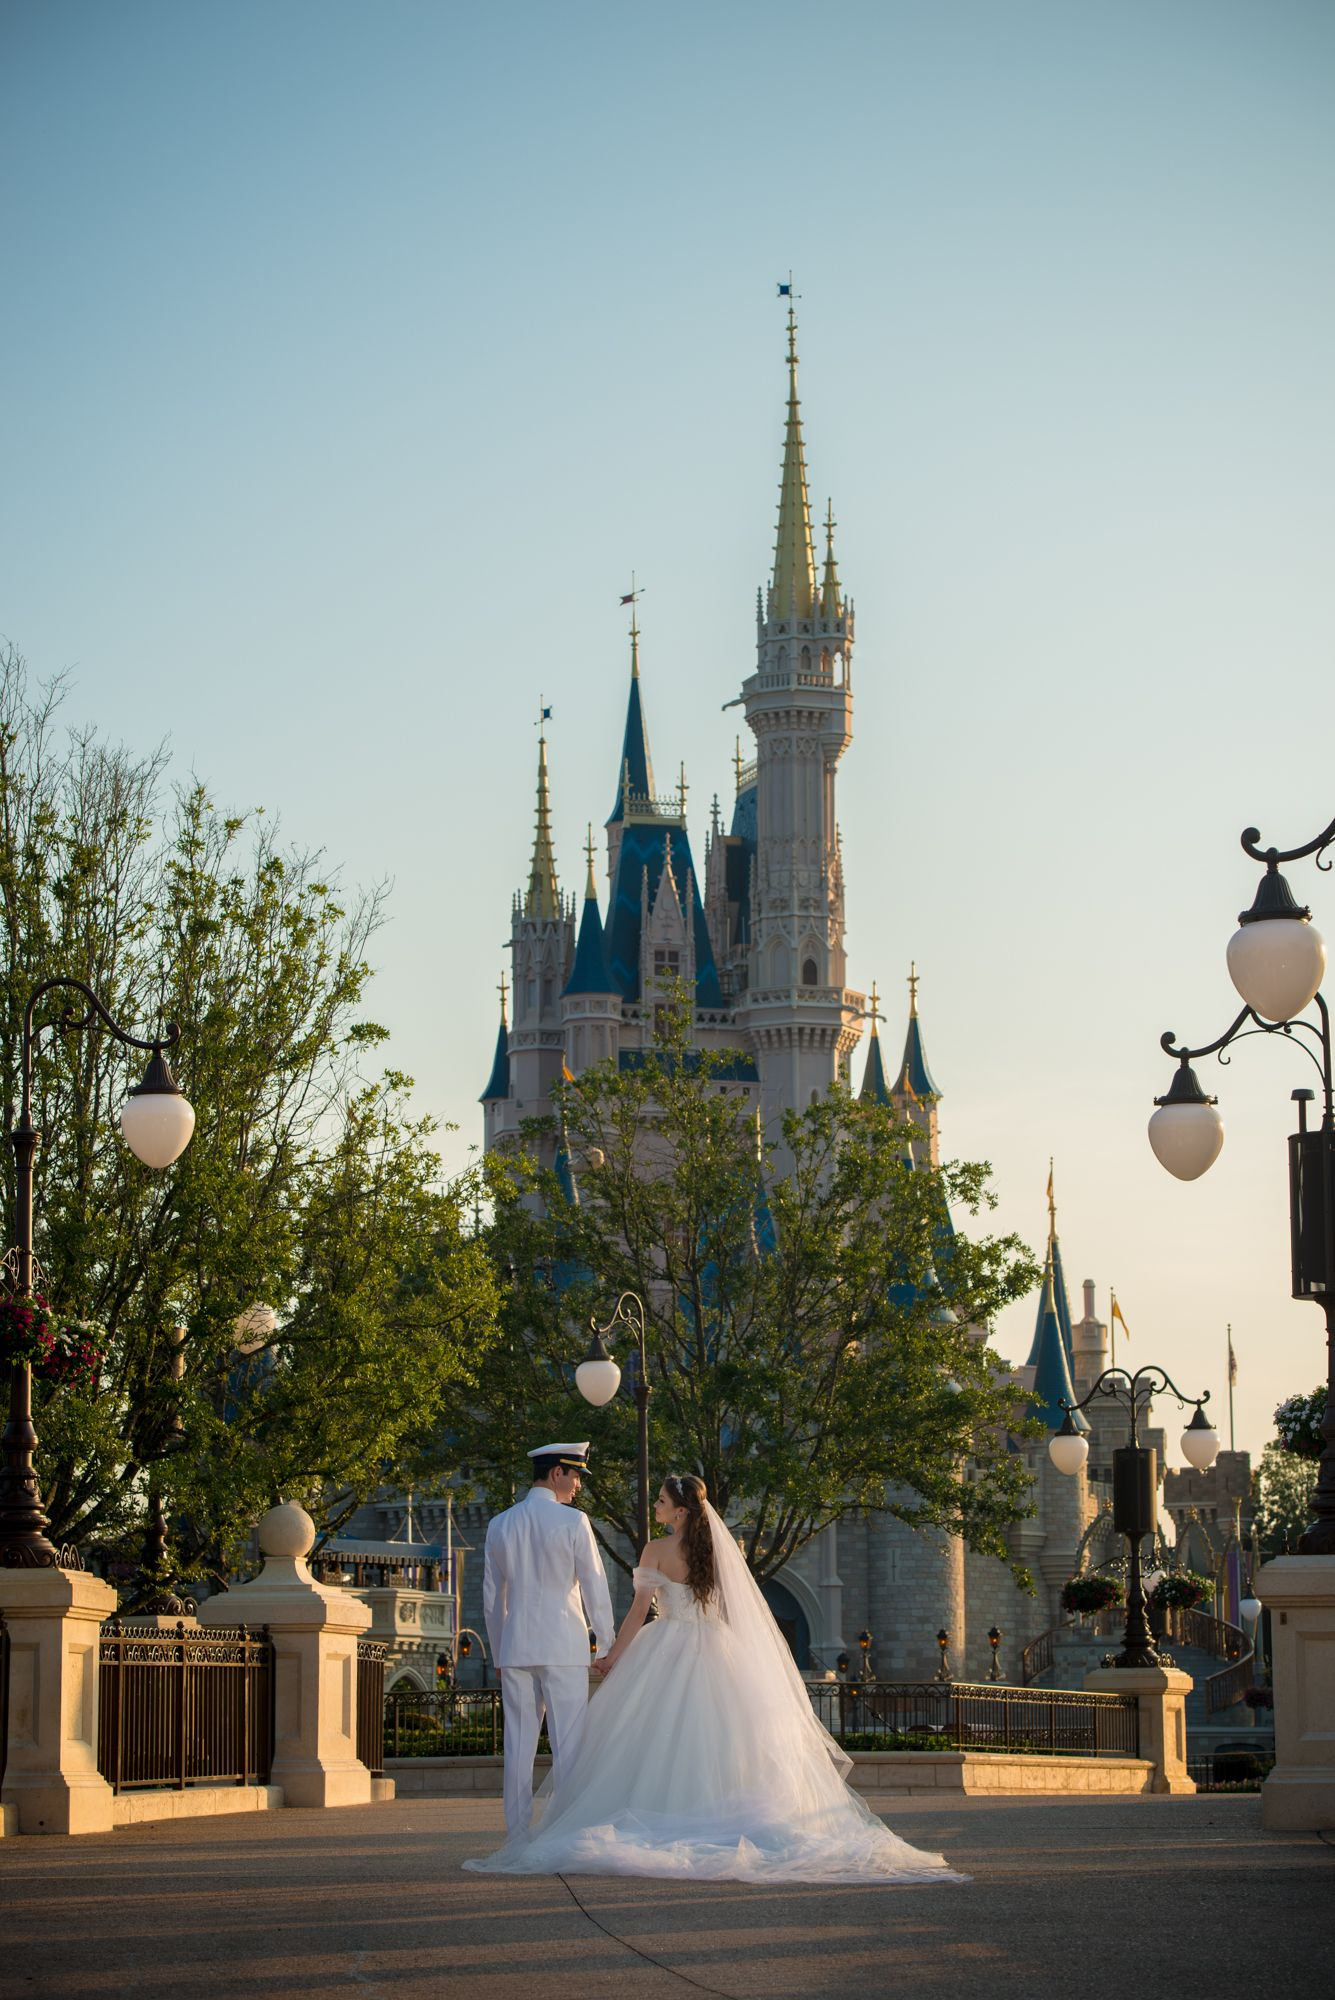 walking hand in hand through the magic kingdom toward cinderella